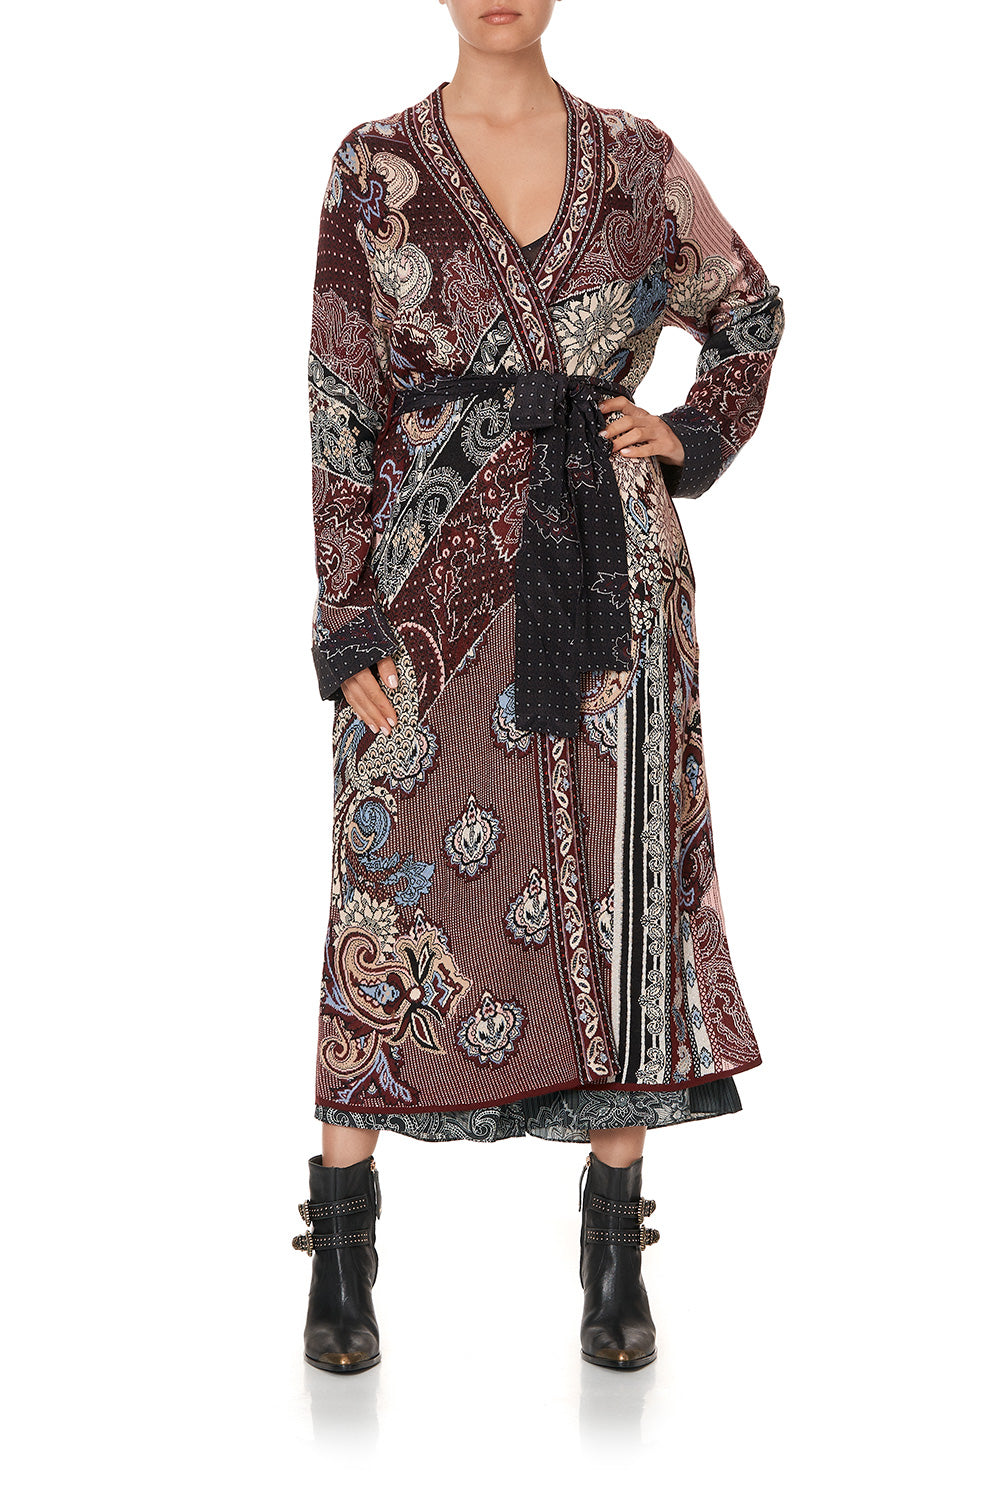 KNIT COAT WITH WOVEN DETAIL TALE OF THE FIRE BIRD